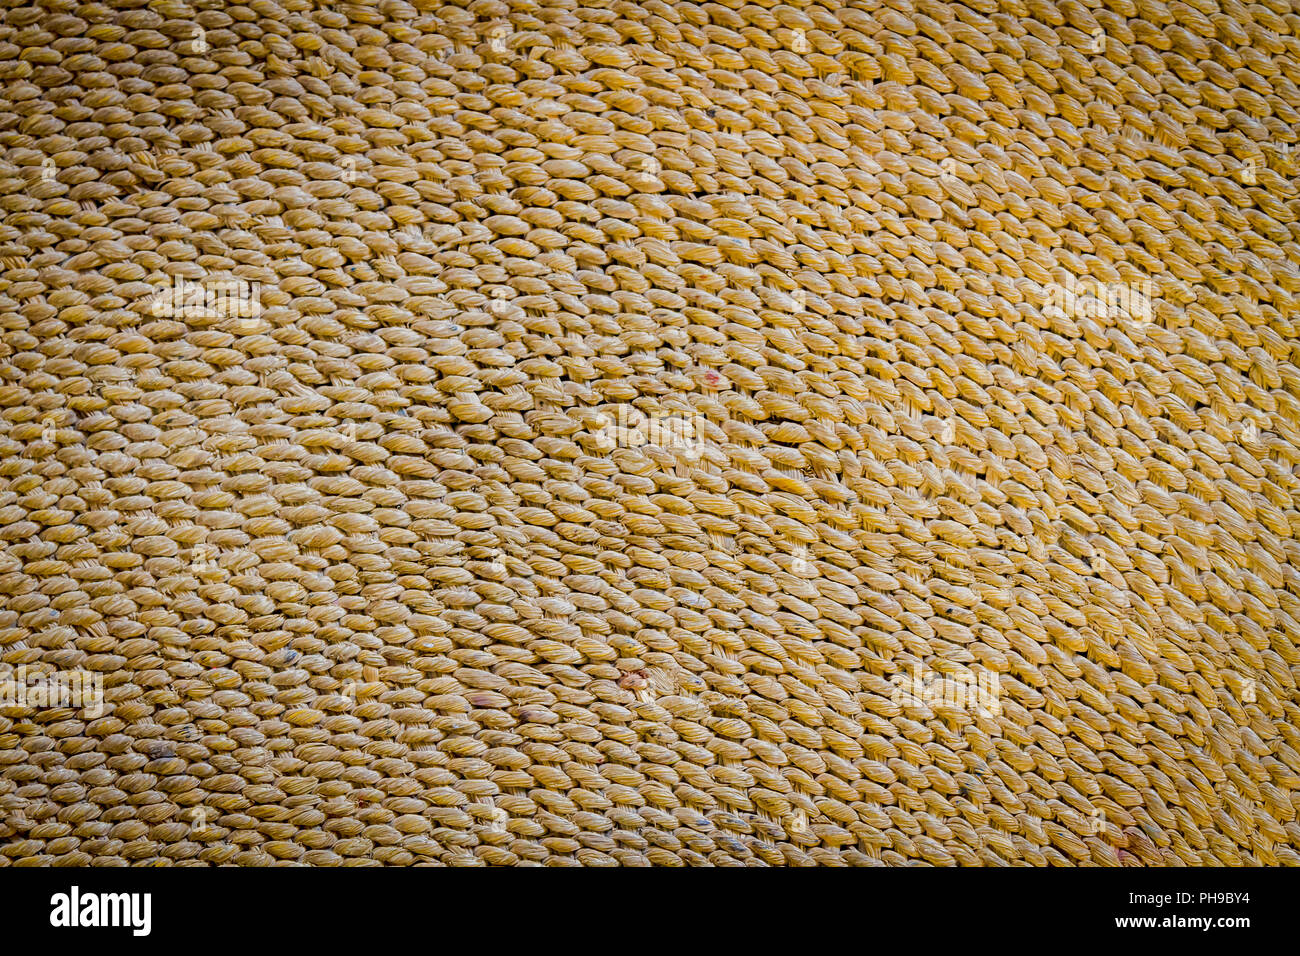 woven straw mat background,texture,wallpaper concept - Stock Image